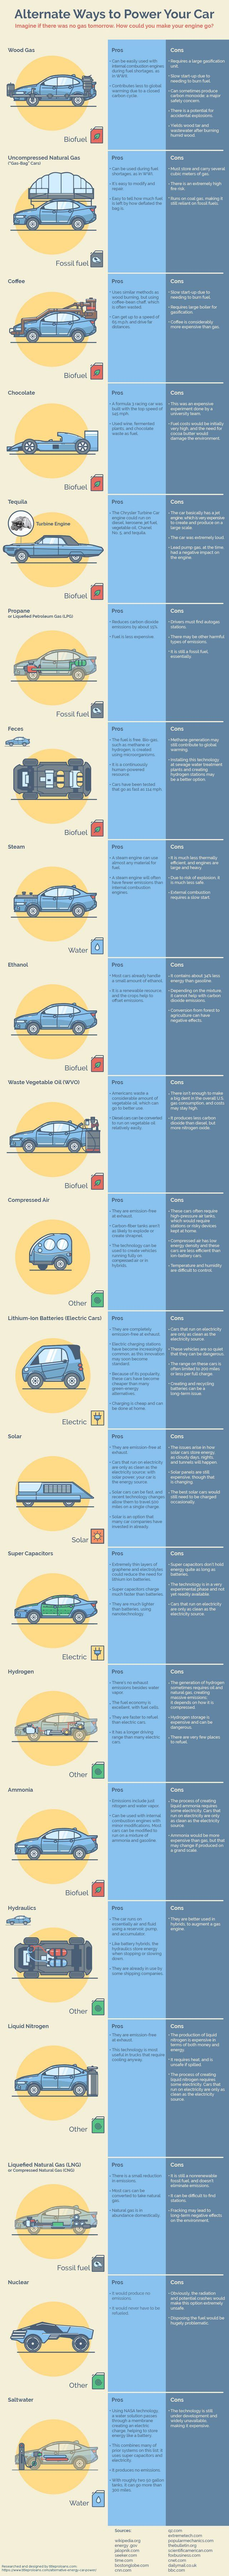 Some ways to power your car without gas... - Imgur